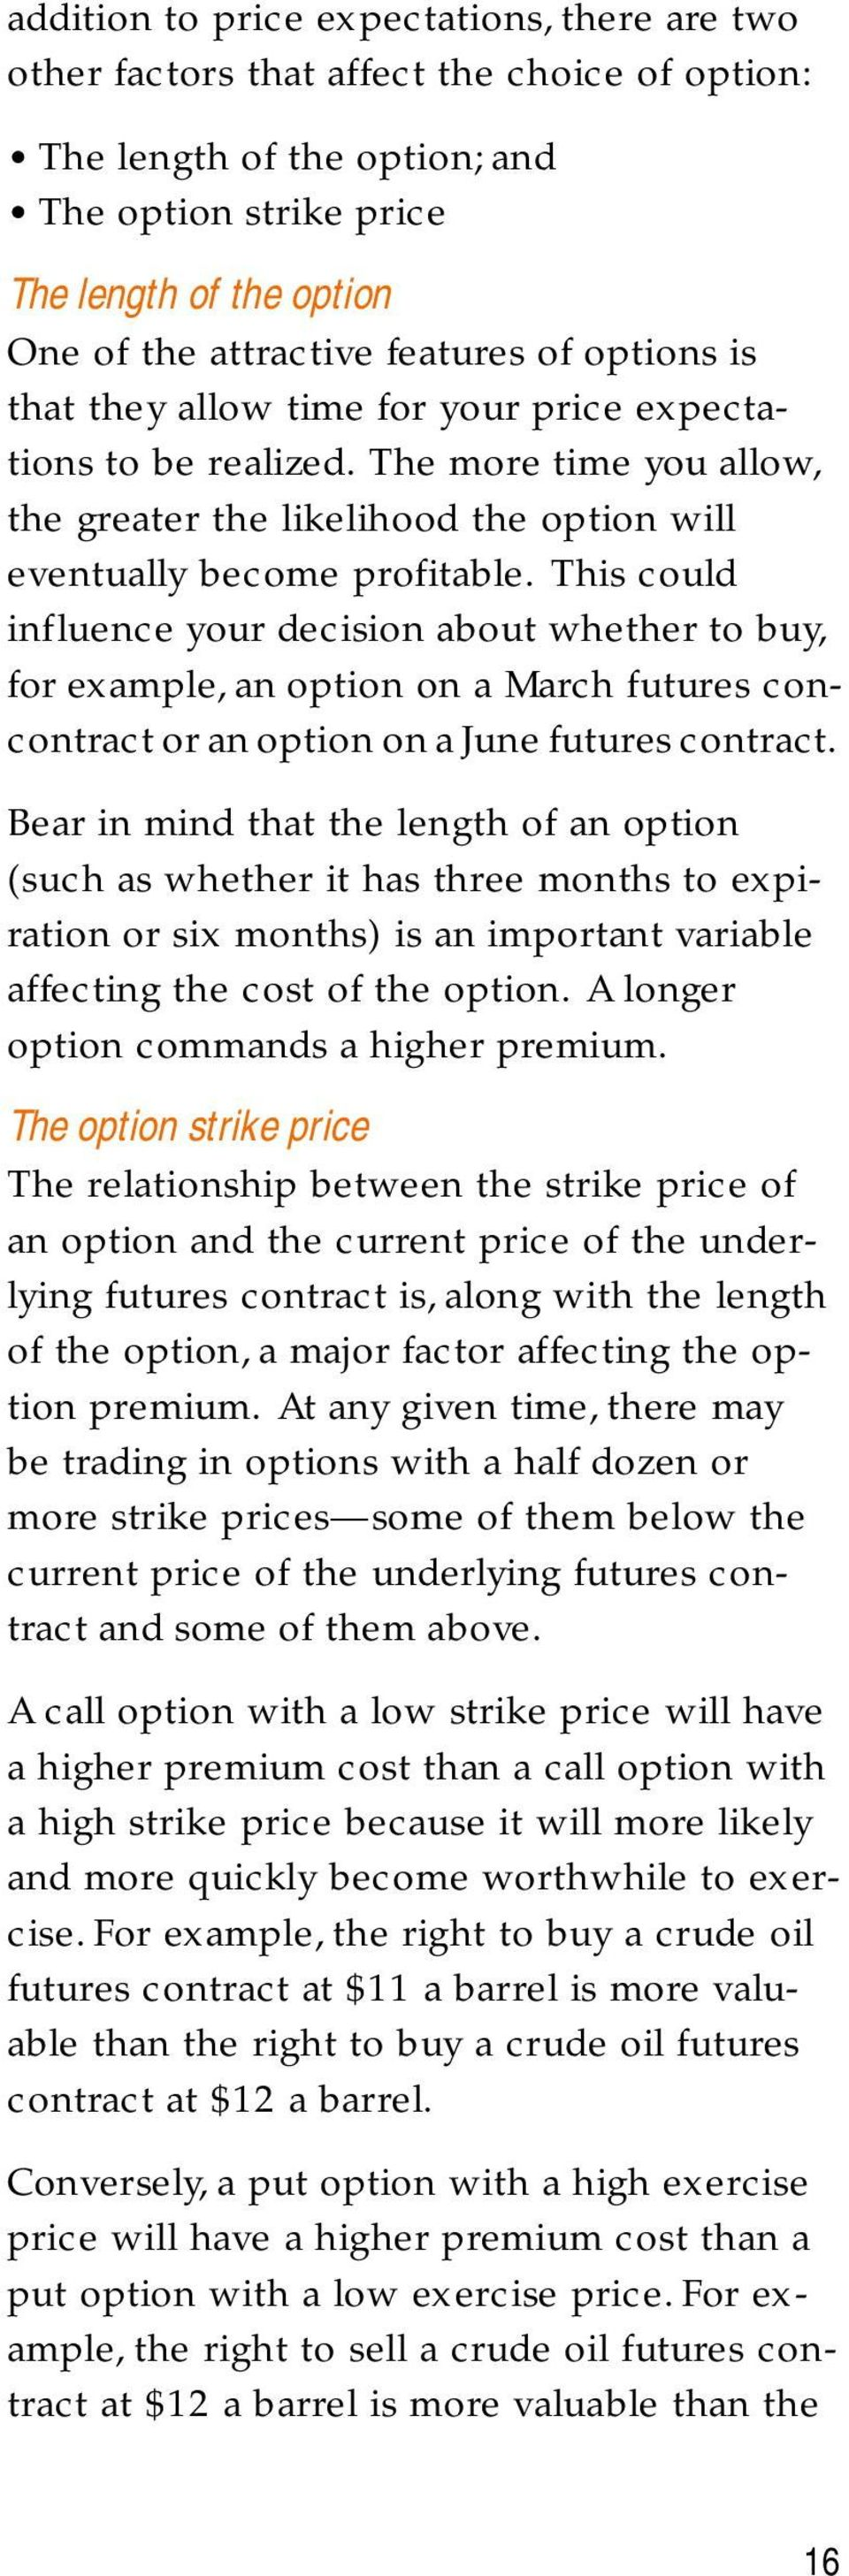 This could influence your decision about whether to buy, for example, an option on a March futures concontract or an option on a June futures contract.